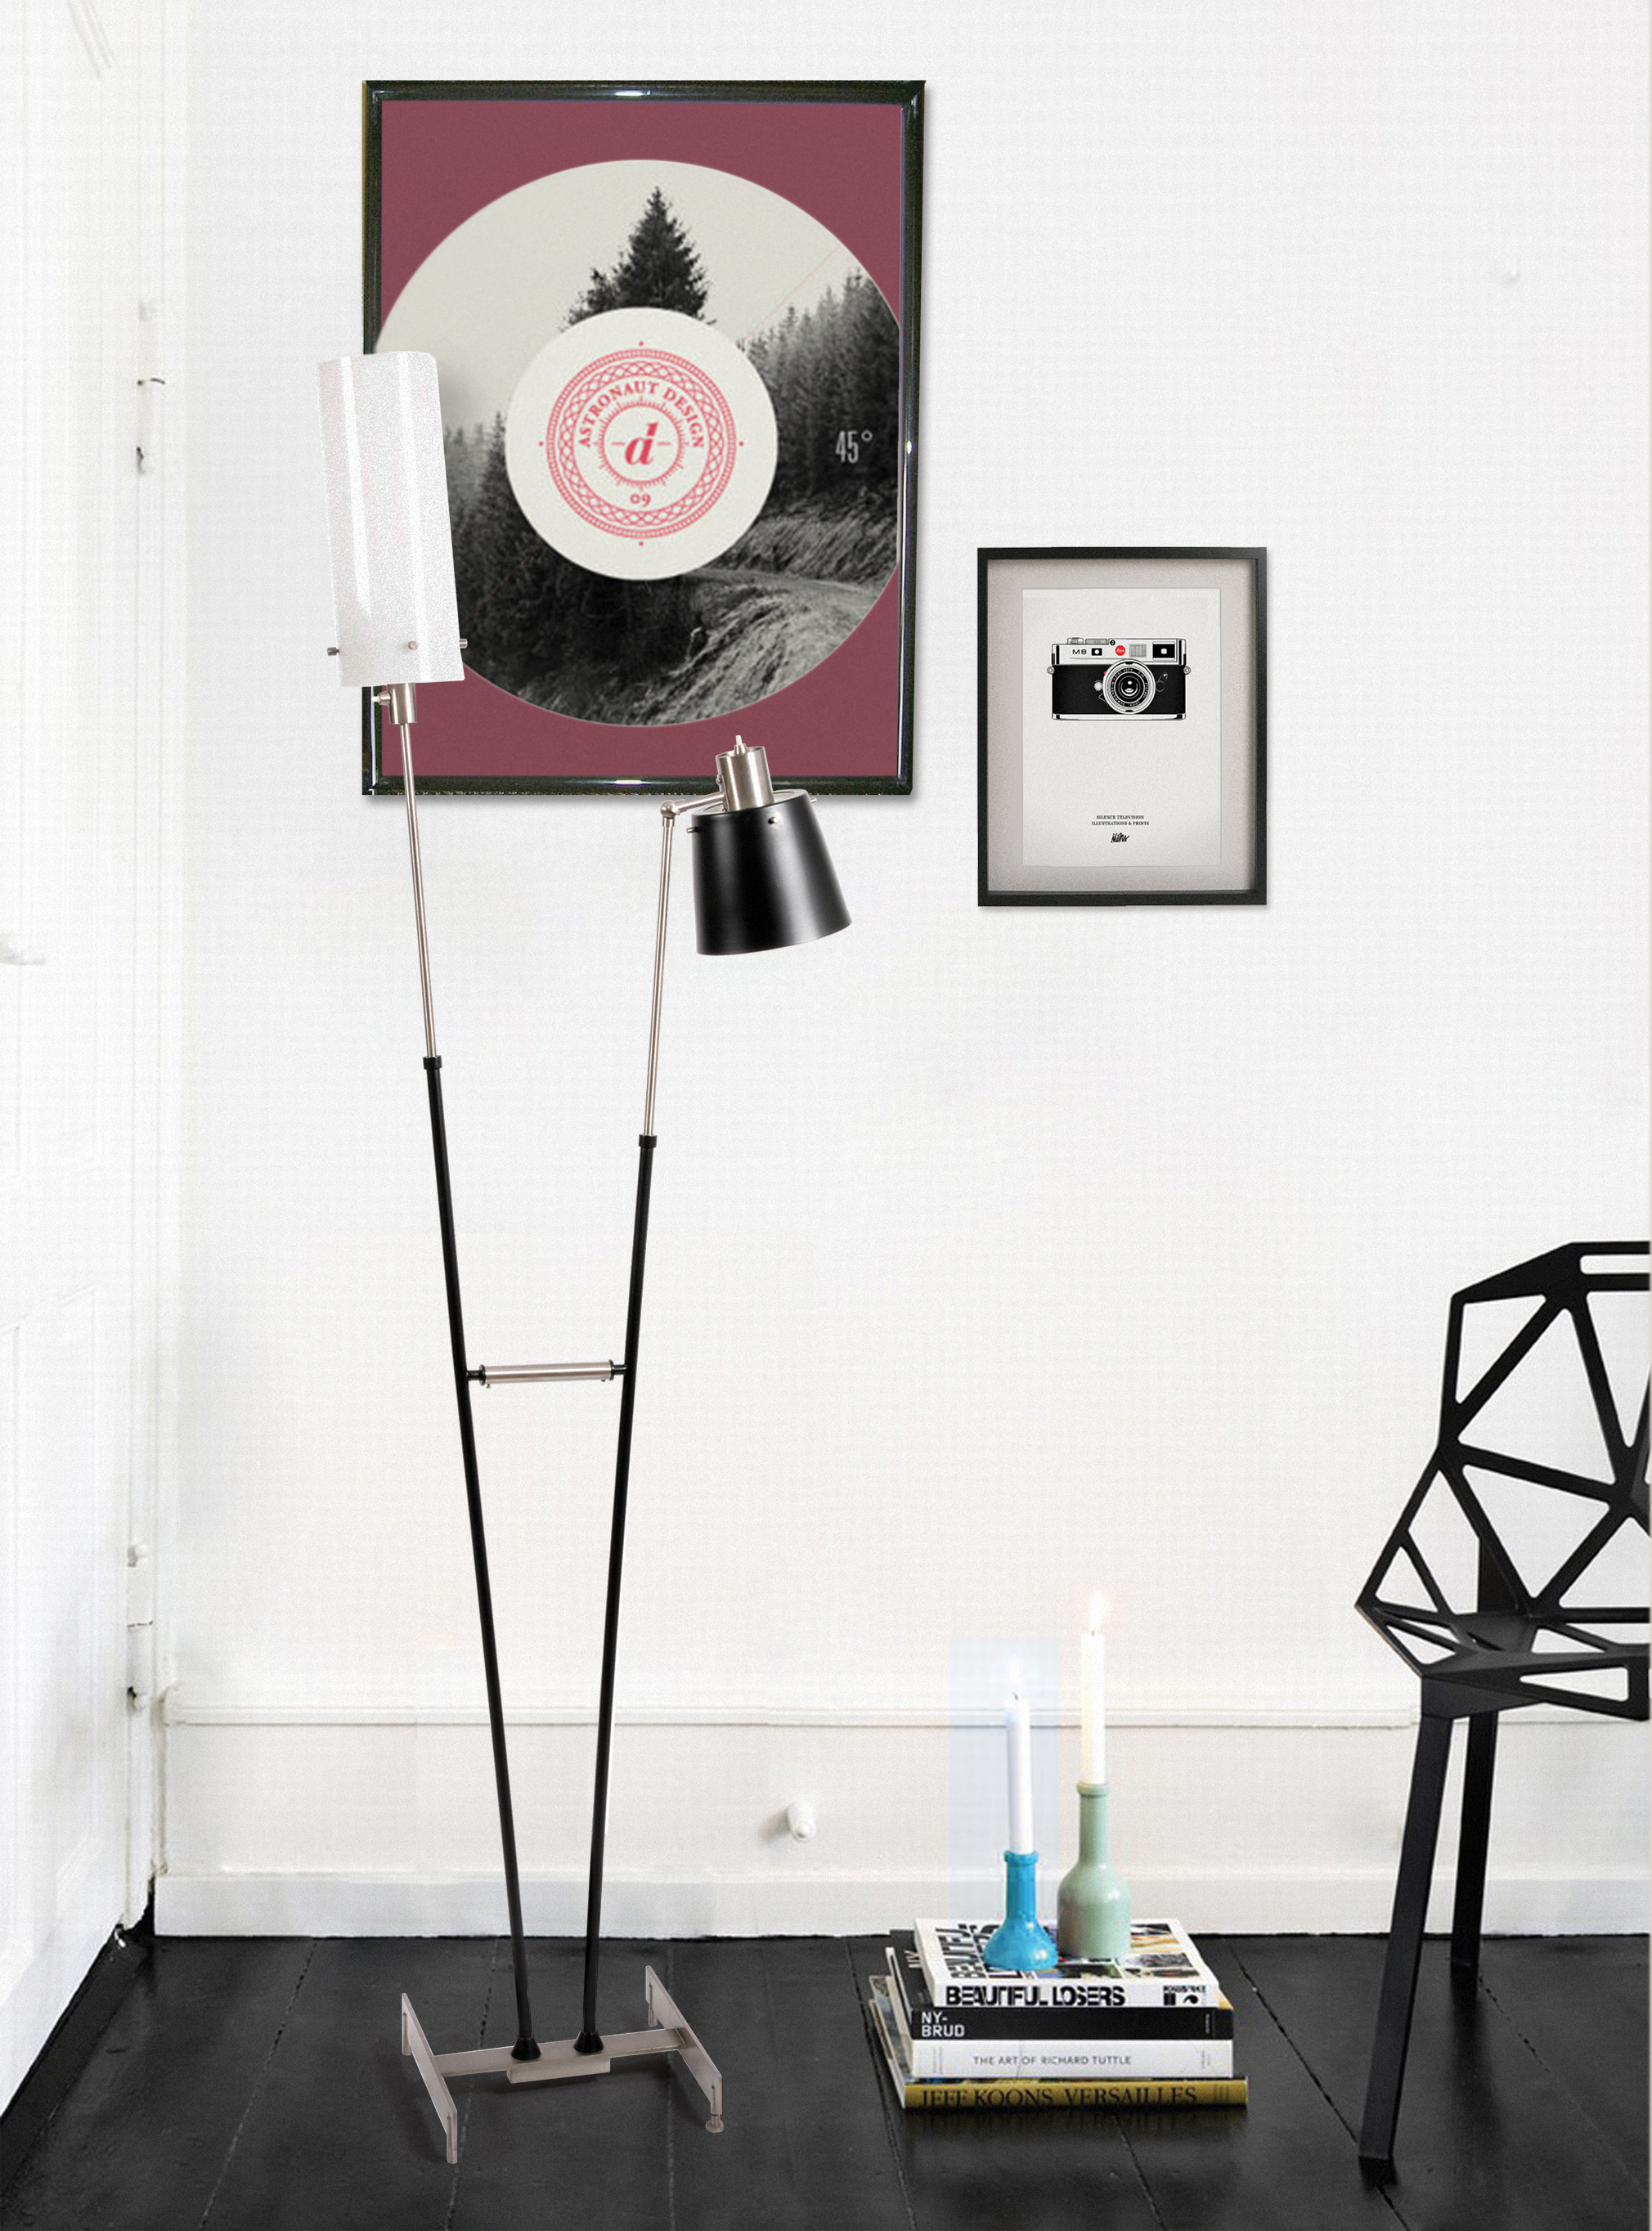 industrial floor lamp Add An Industrial Floor Lamp To Your Home Add An Industrial Floor Lamp To Your Home 7